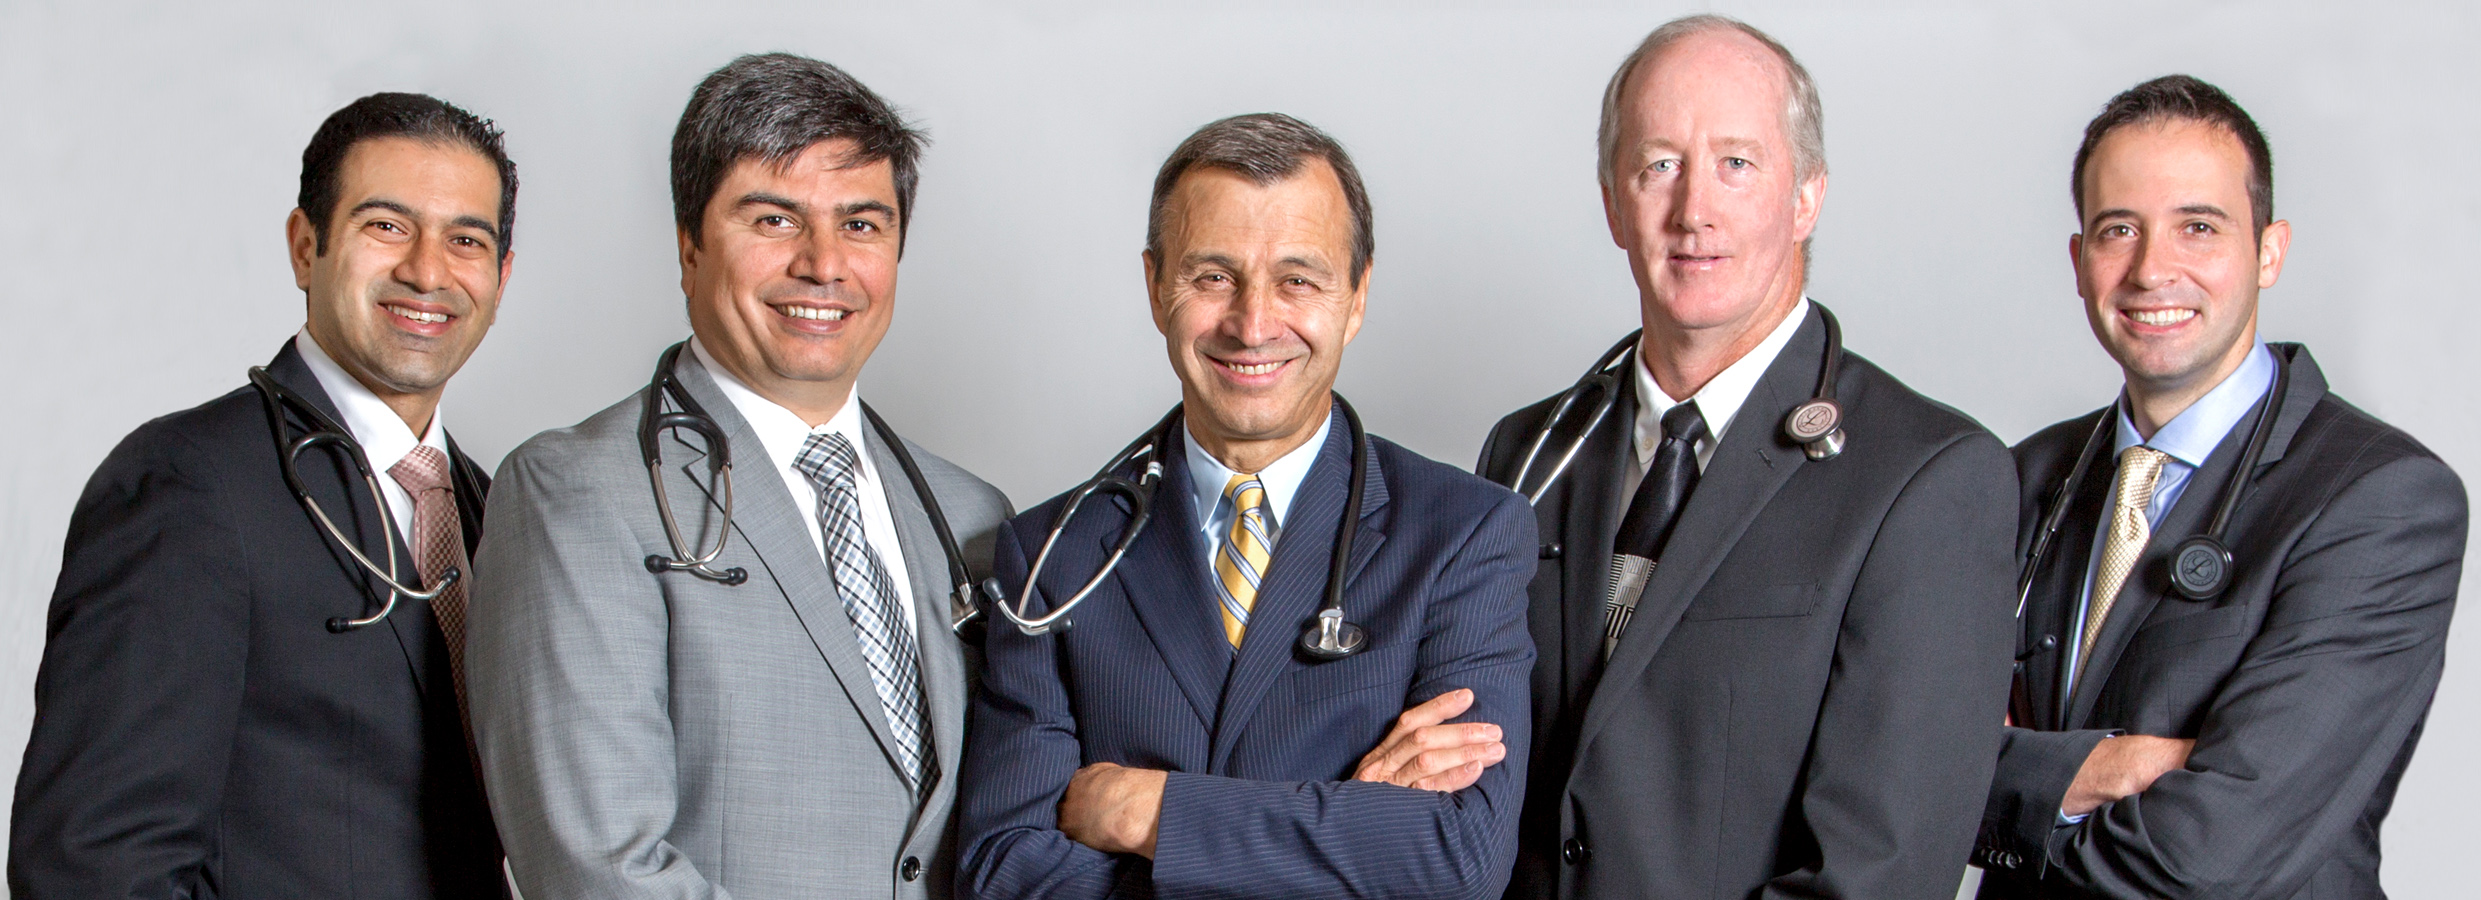 Cardiovascular Specialists of North Jersey